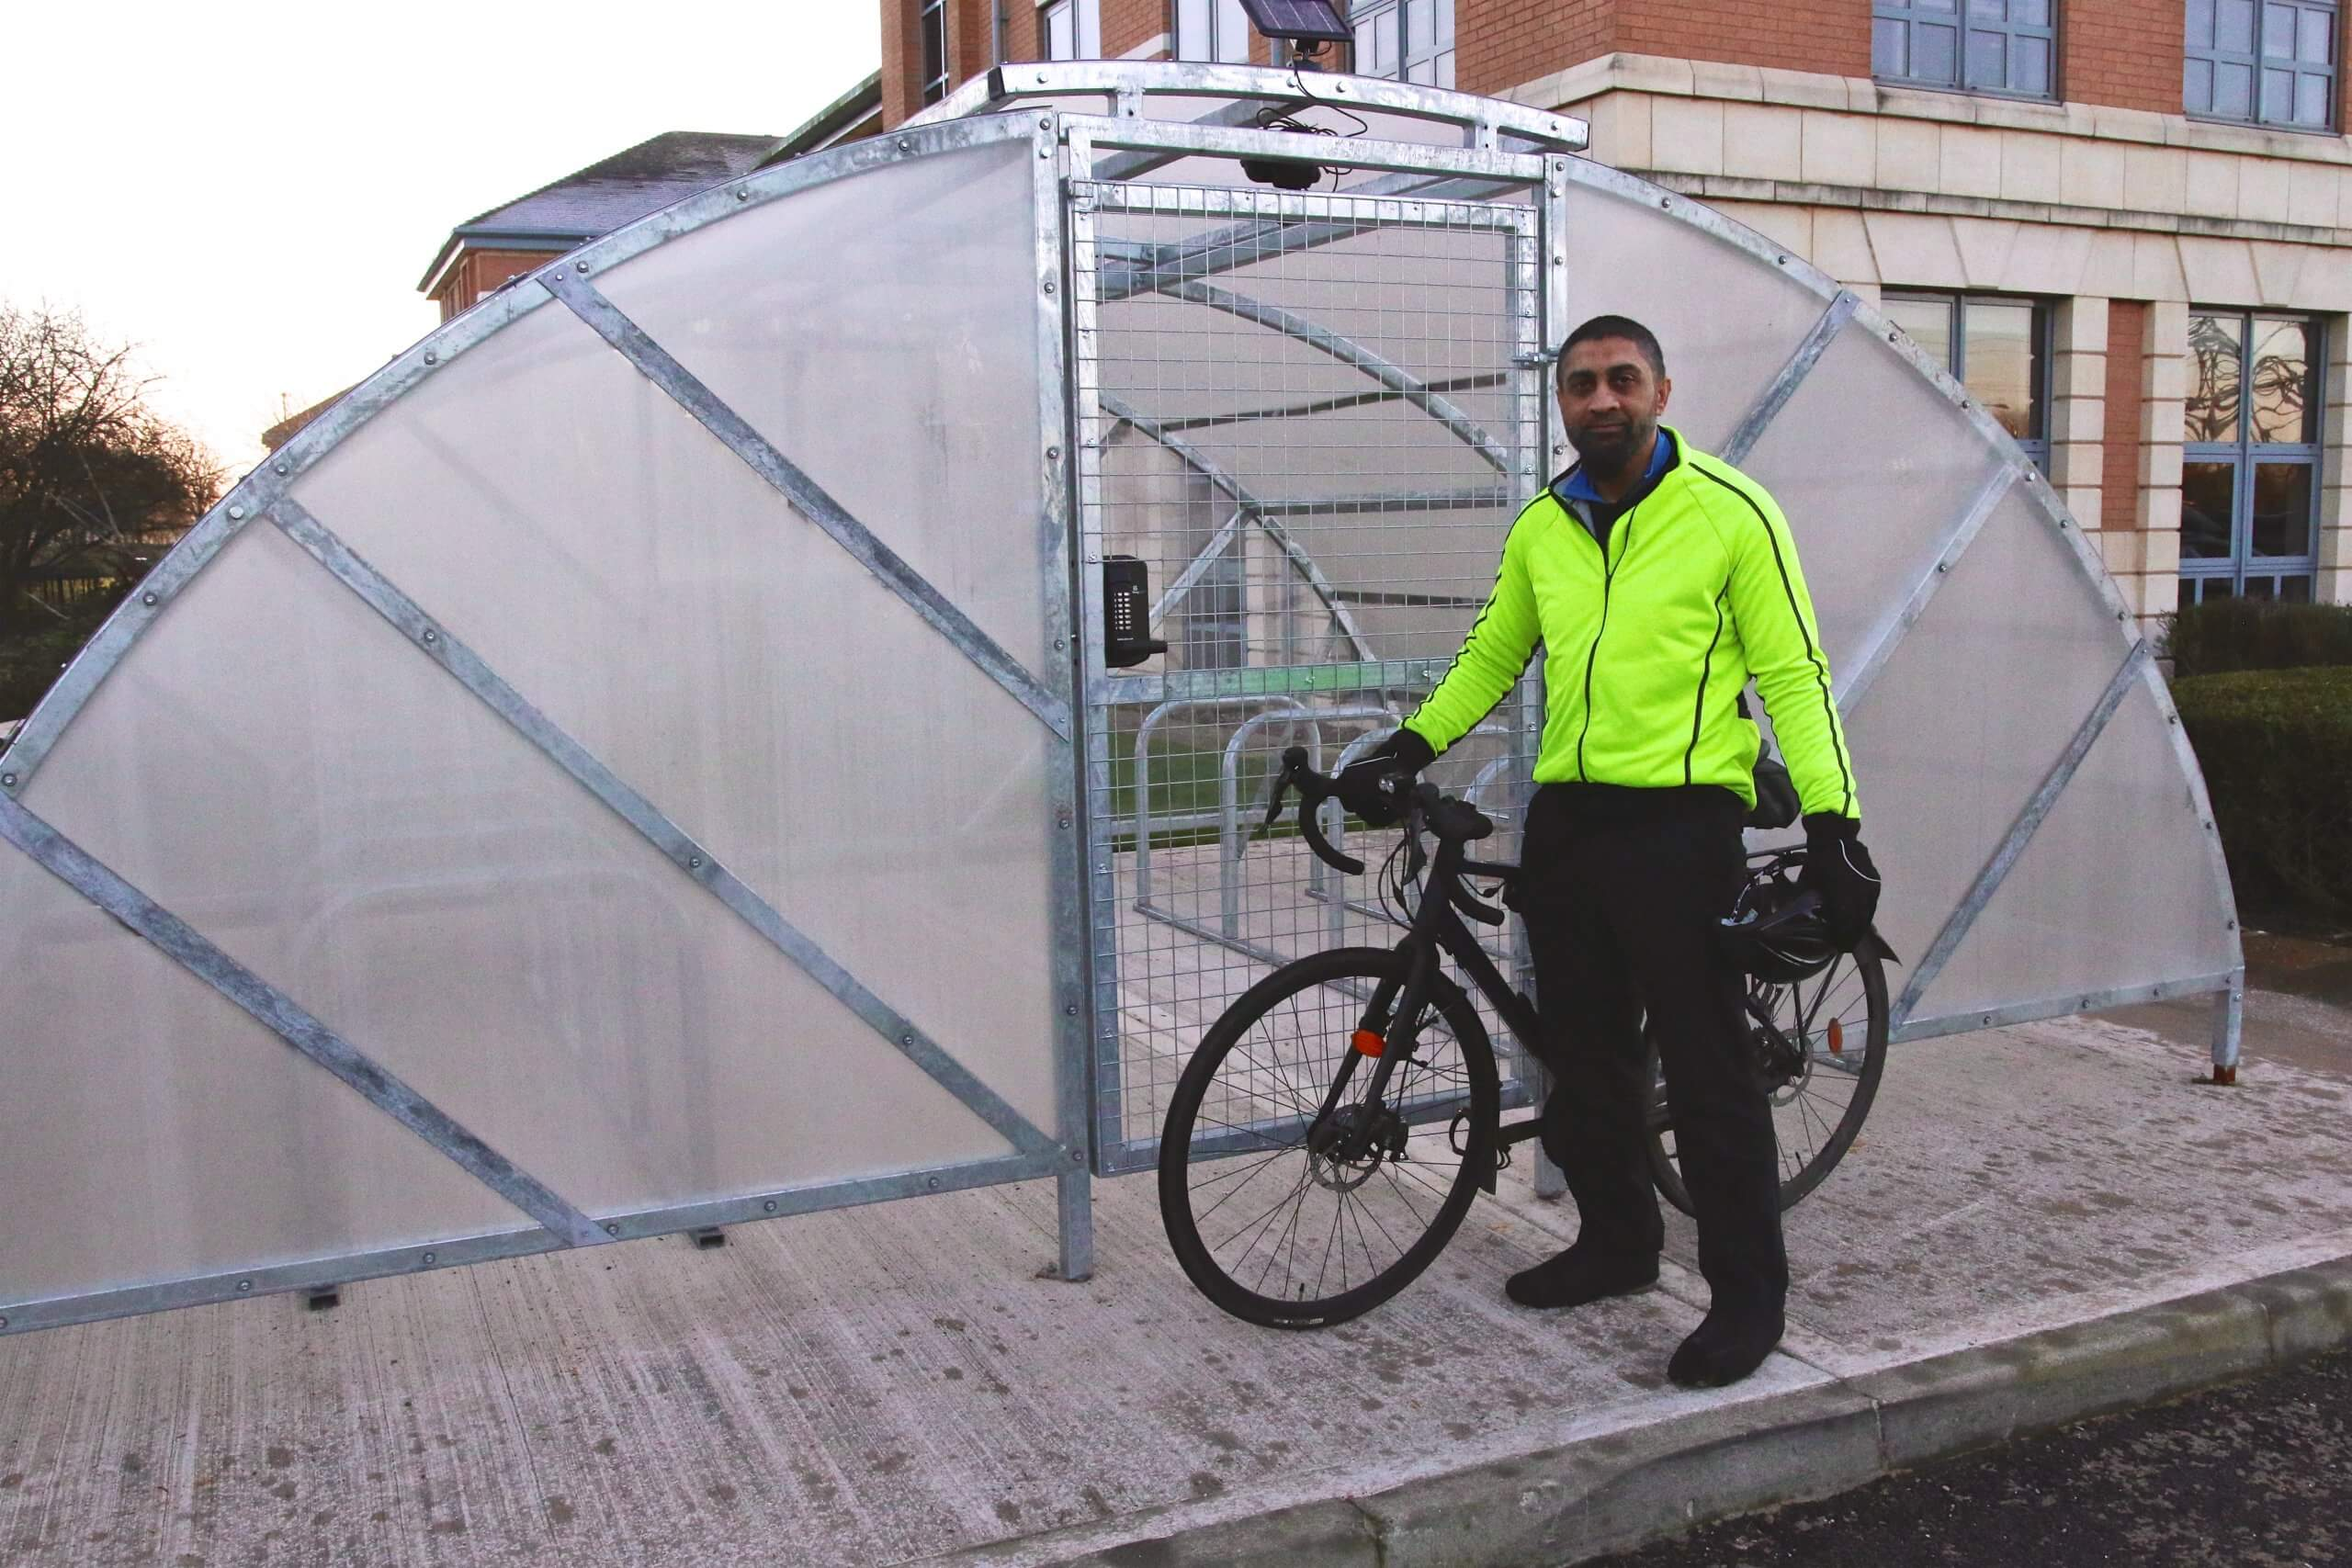 Experian Employee standing next to cycle shelter